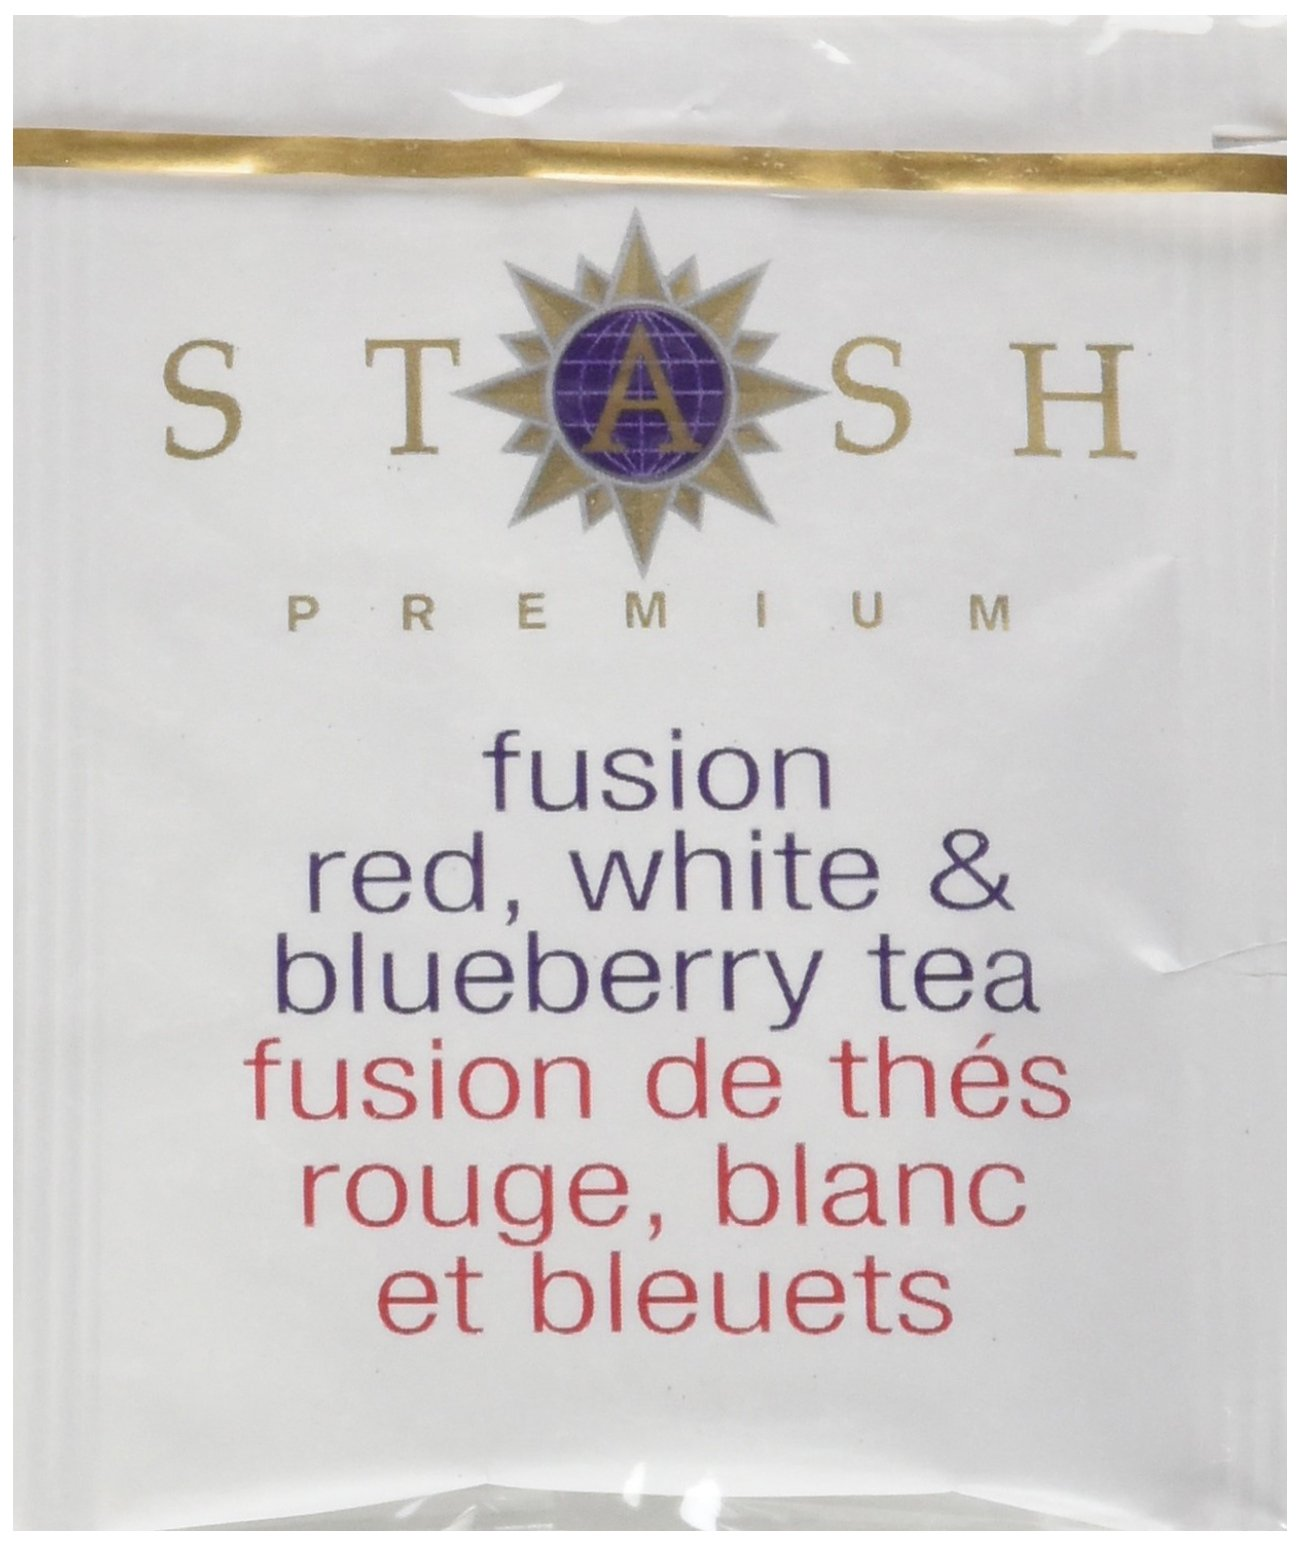 Stash Tea Fusion Red White & Blueberry Tea 10 Count Tea Bags in Foil (Pack of 12) (Packaging May Vary) Individual Tea Bags for Use in Teapots Mugs or Cups, Rooibos and White Tea, Brew Hot or Iced